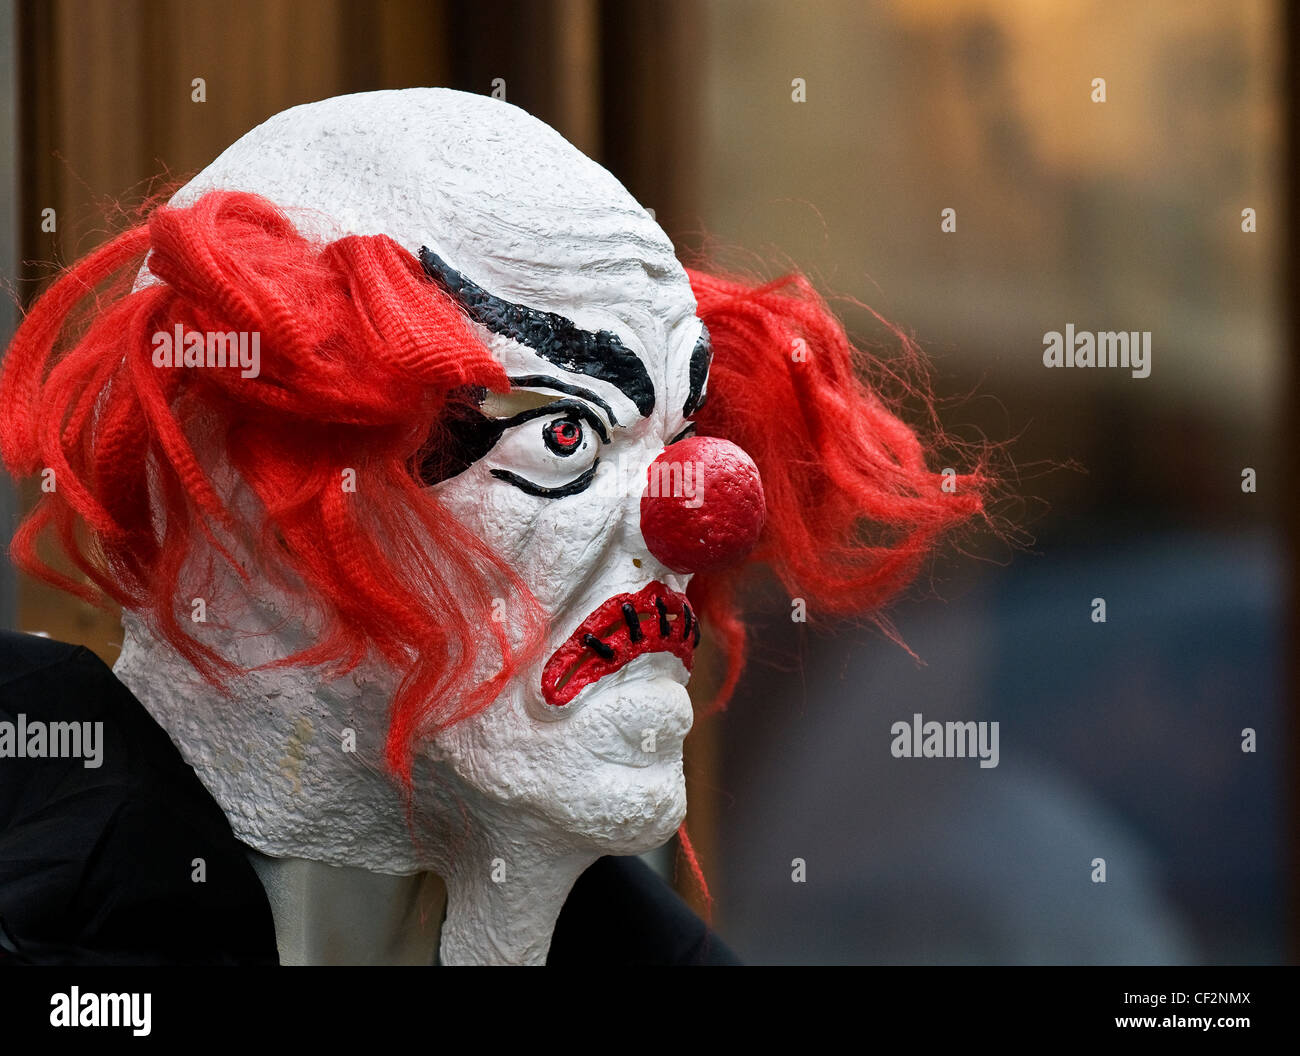 A frightening clown mask on a dummy. - Stock Image